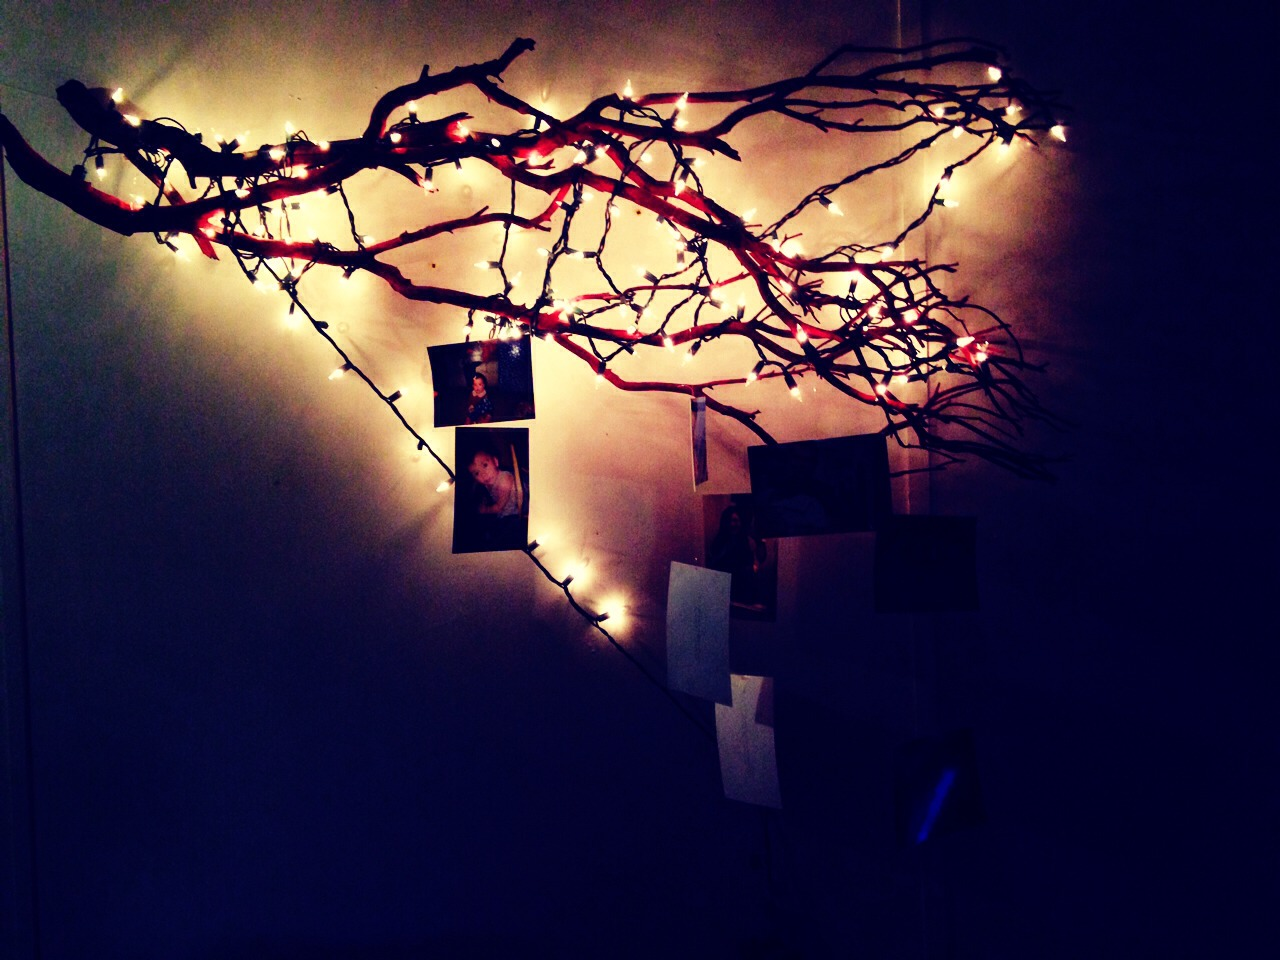 Pick up some old tree branches and spray paint them whatever color (I chose red) grab a tack and some fishing line and poke a small hole with the tack in the picture and string through the line  and wrap around lights if you choose. Finish with wrapping fishing line around the end to hang:)